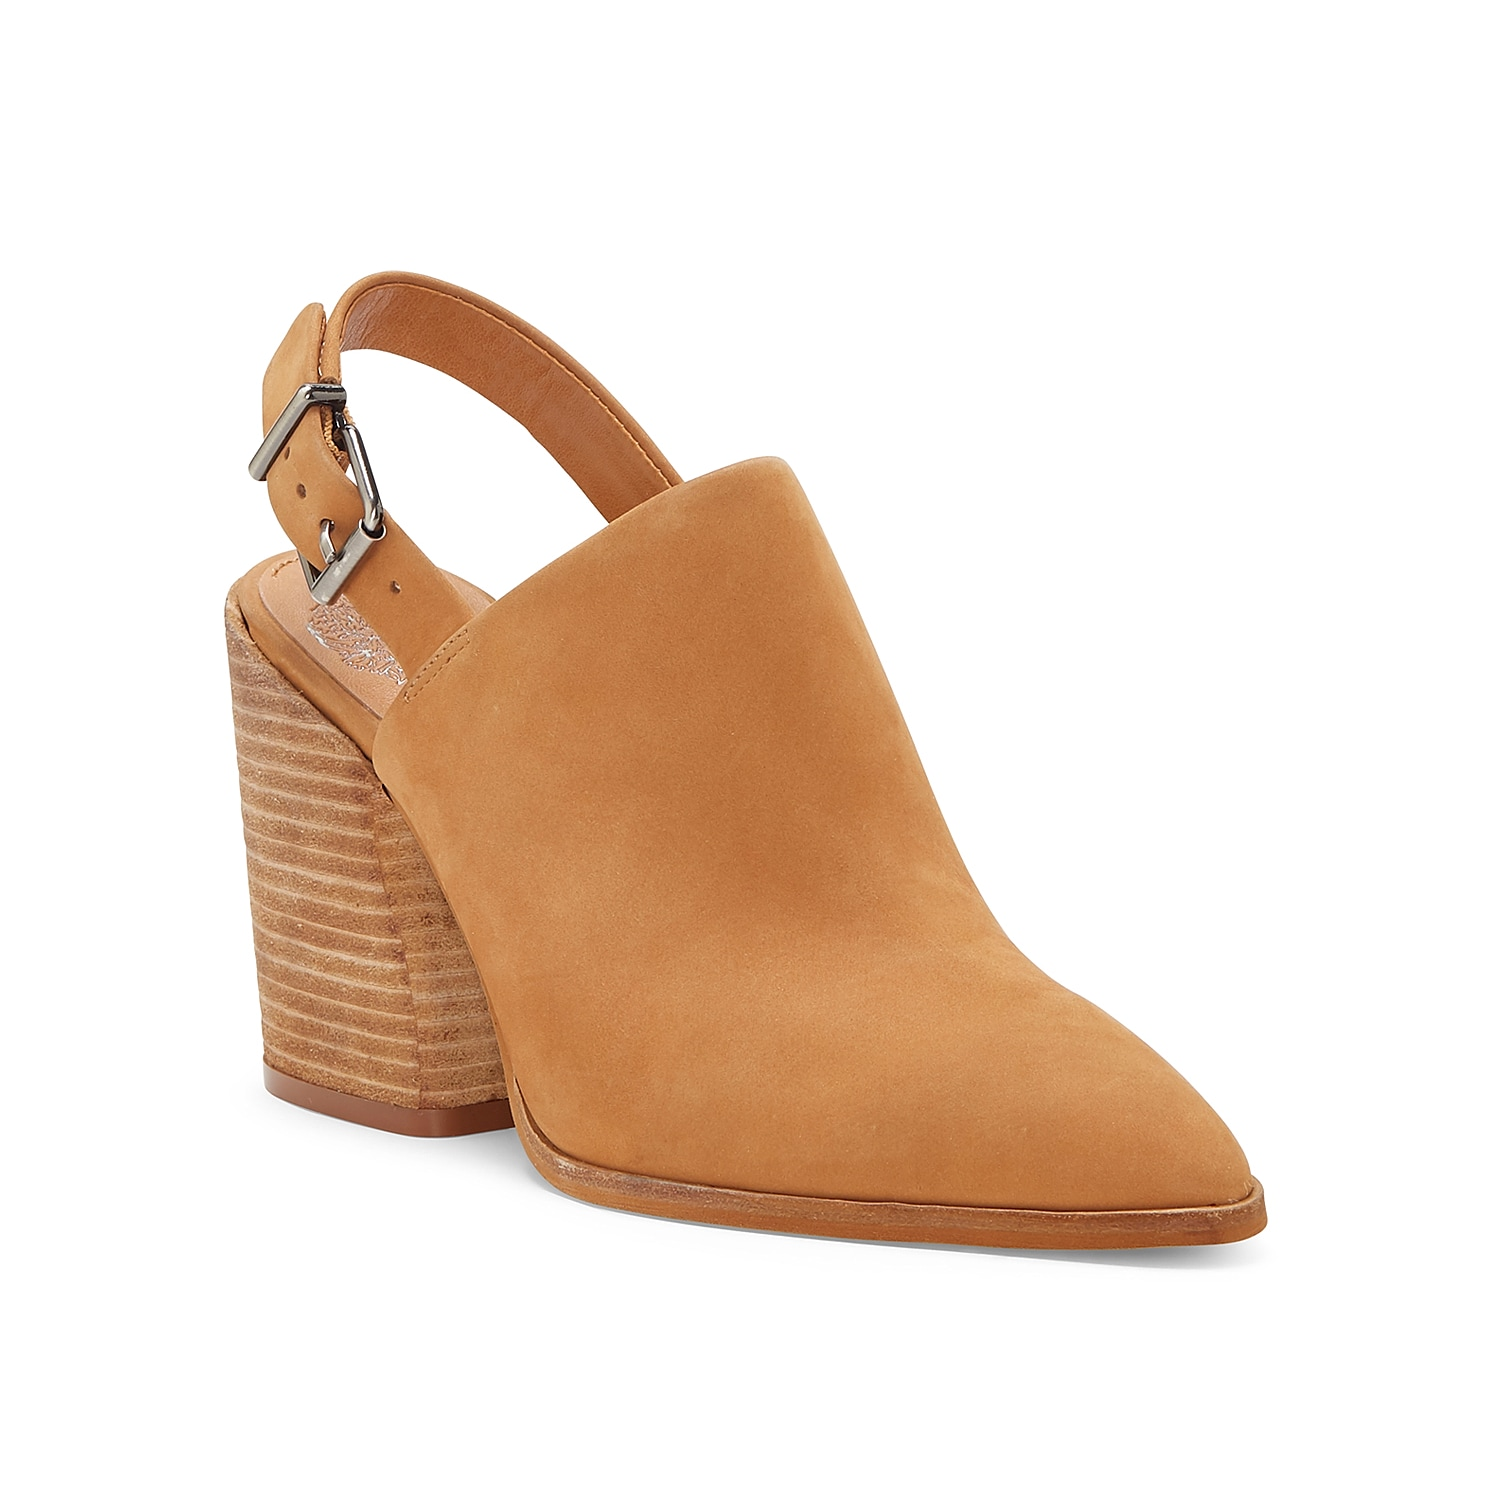 Add an instant boost to your shoe collection with the Chemine mule from Vince Camuto. This silhouette is fashioned with a soft nubuck leather upper, secured slingback strap, stacked heel for sturdy struts!